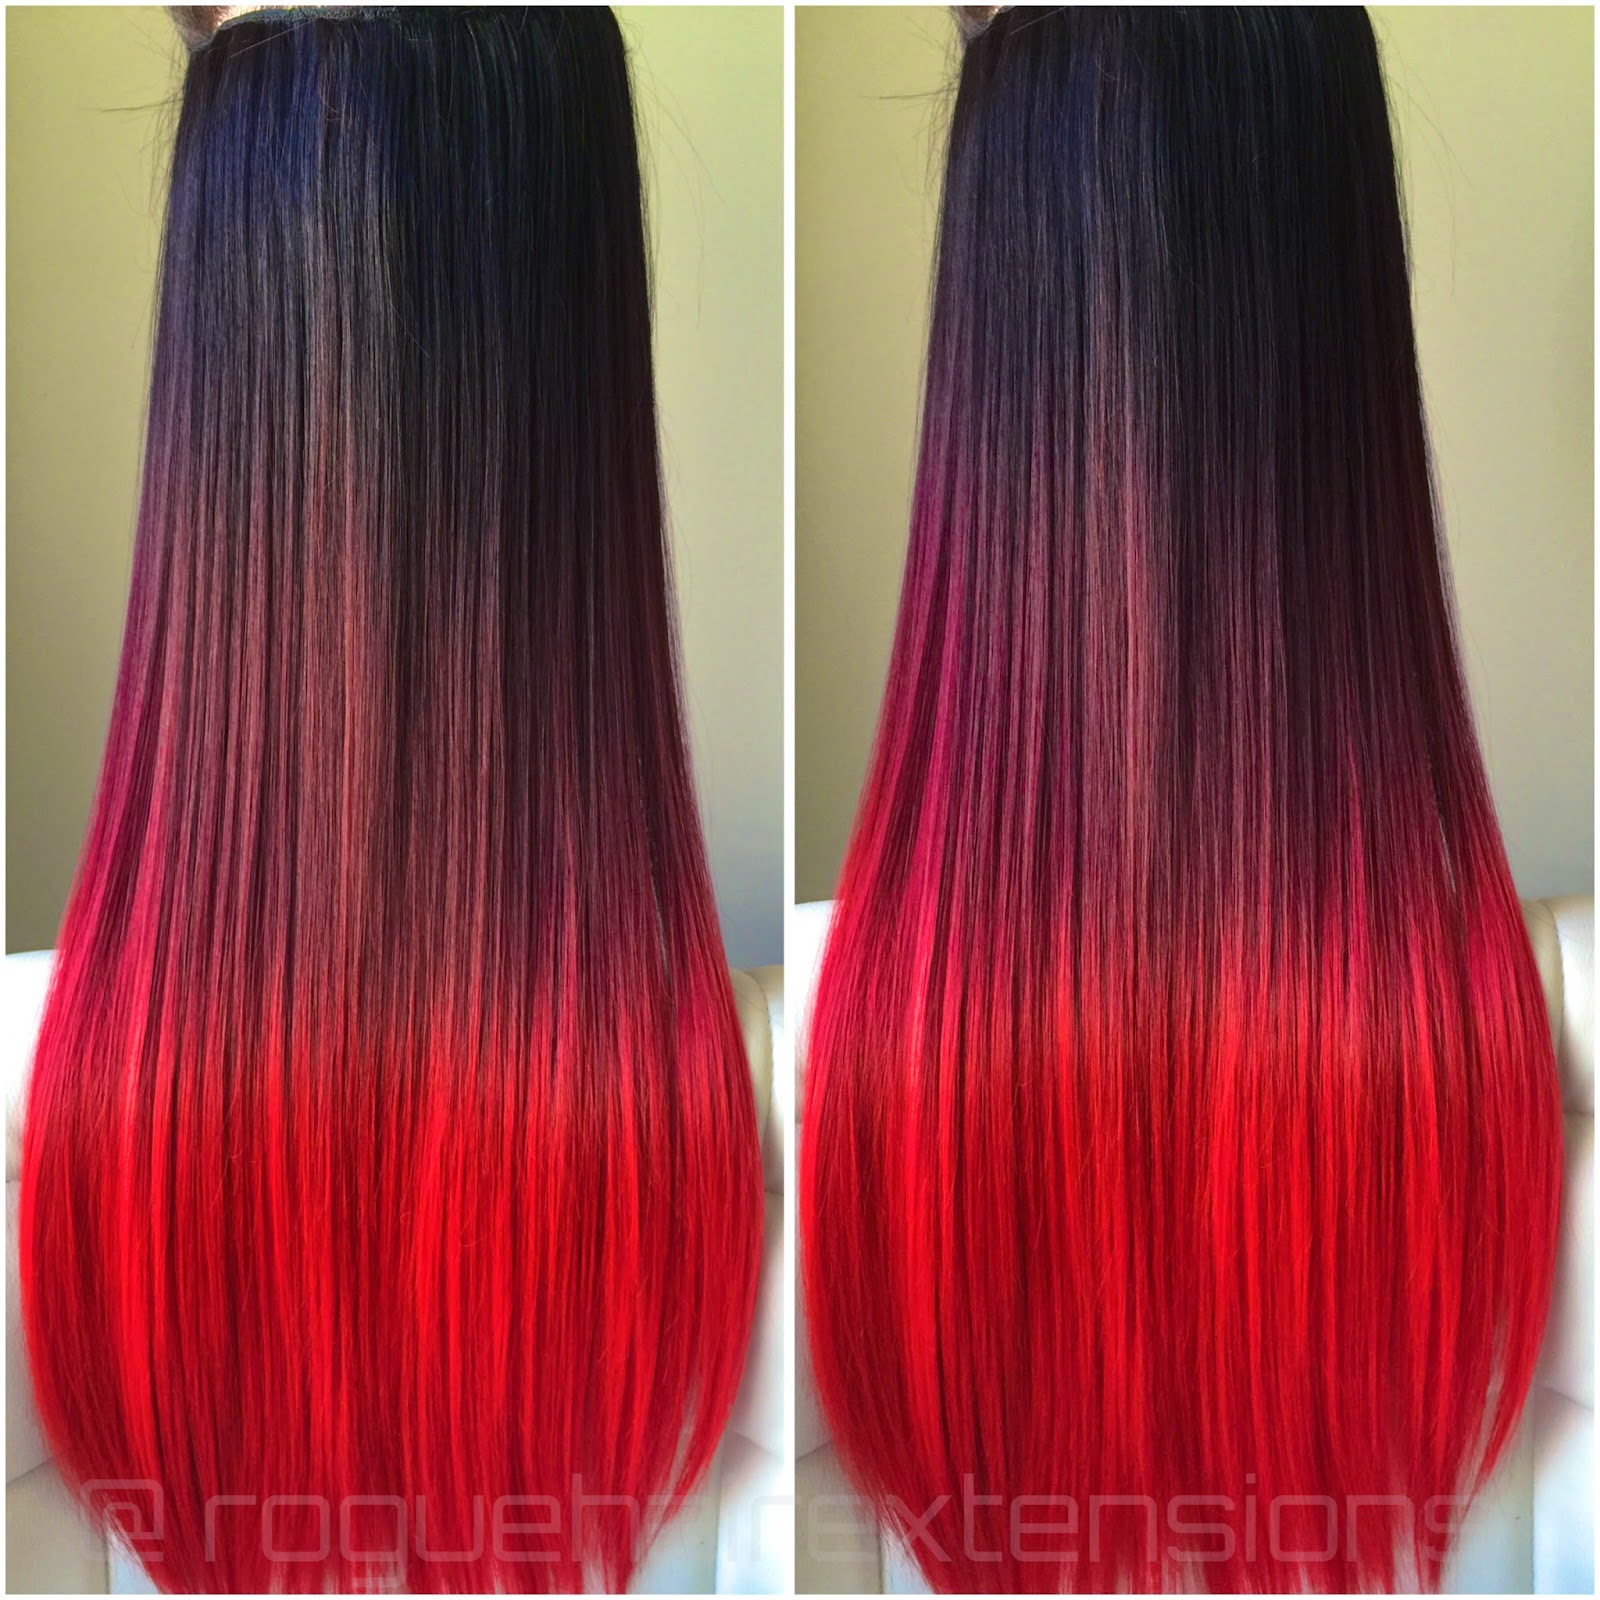 Rogue Hair Extensions New Age Synthetic Hair Rogue Hair